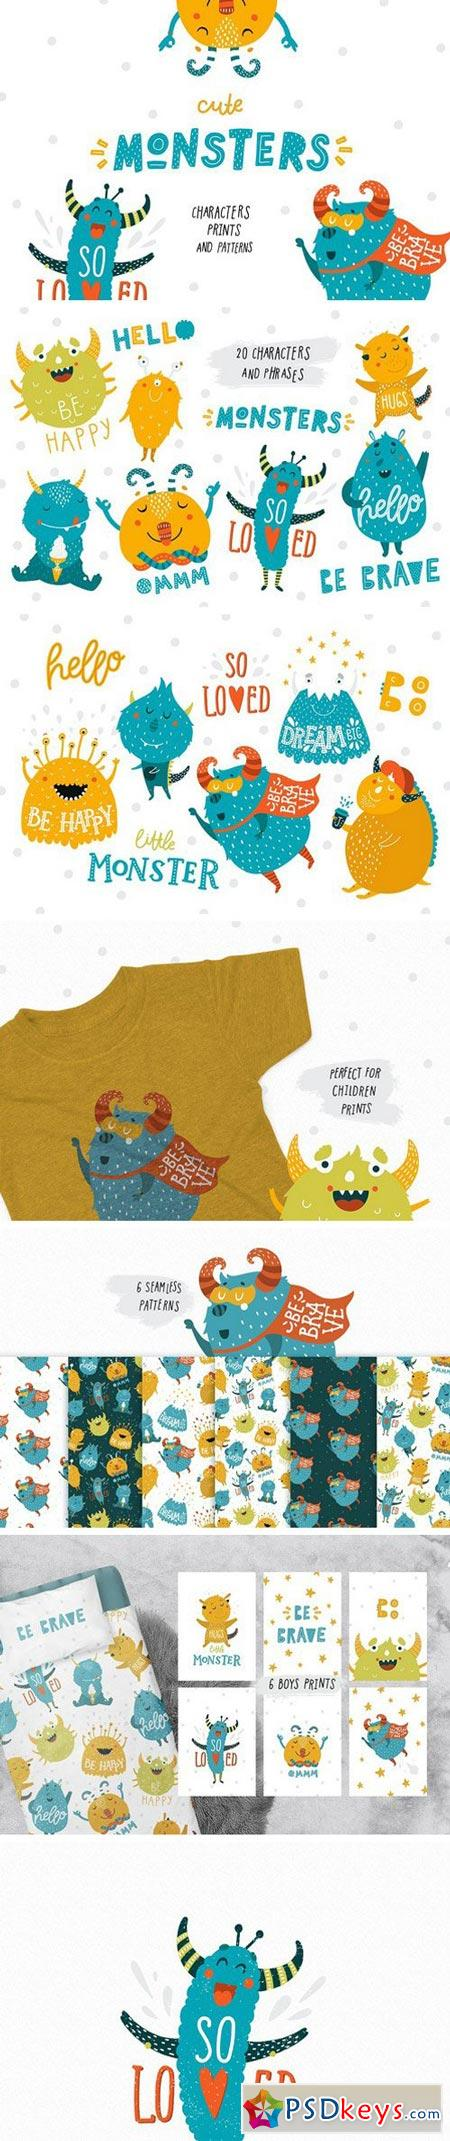 Cute Monsters - Kids collection 1613310